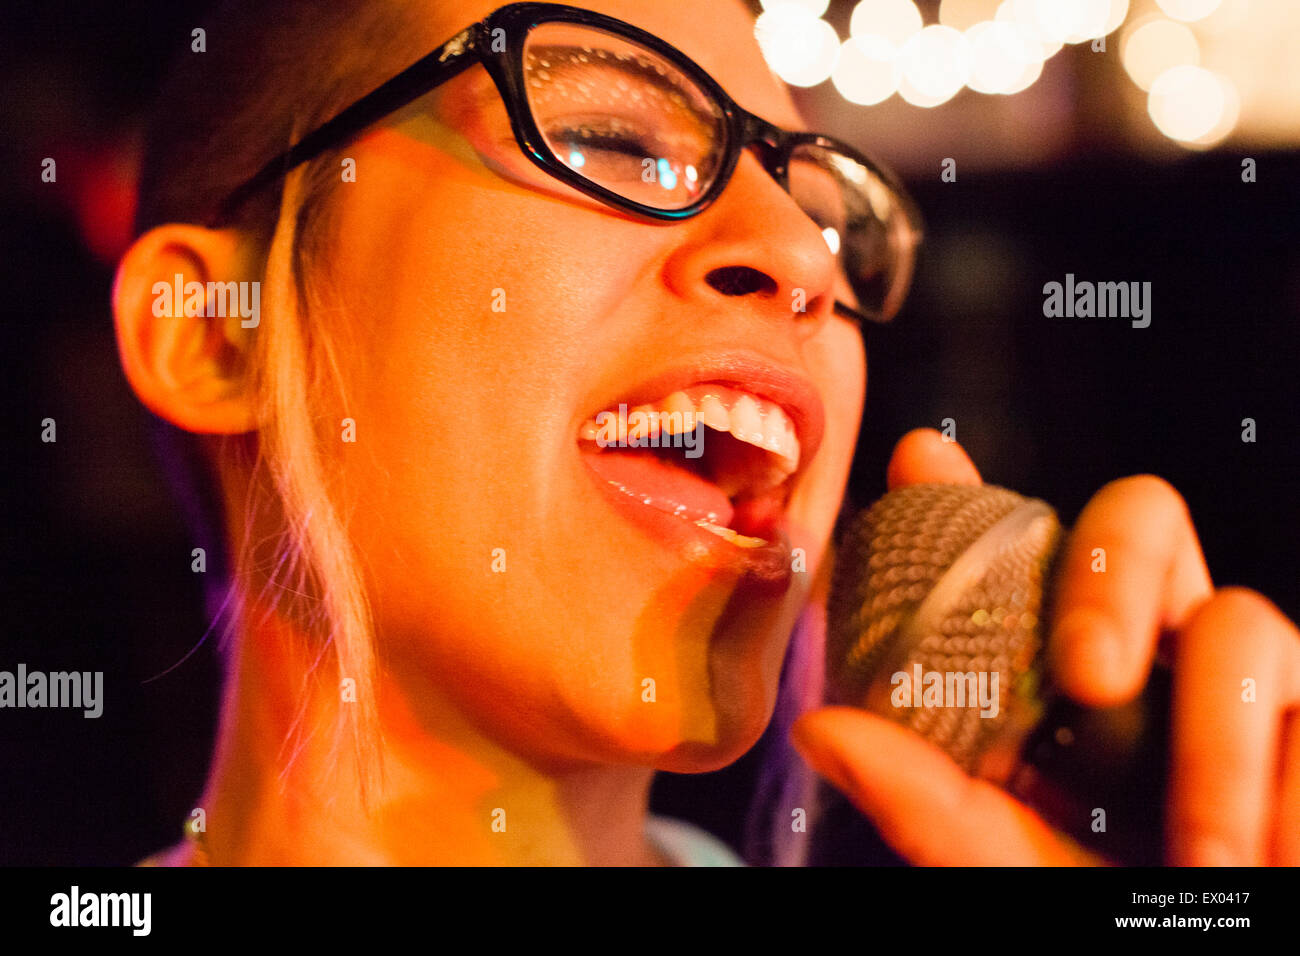 Punk girl singing into microphone, close-up Photo Stock